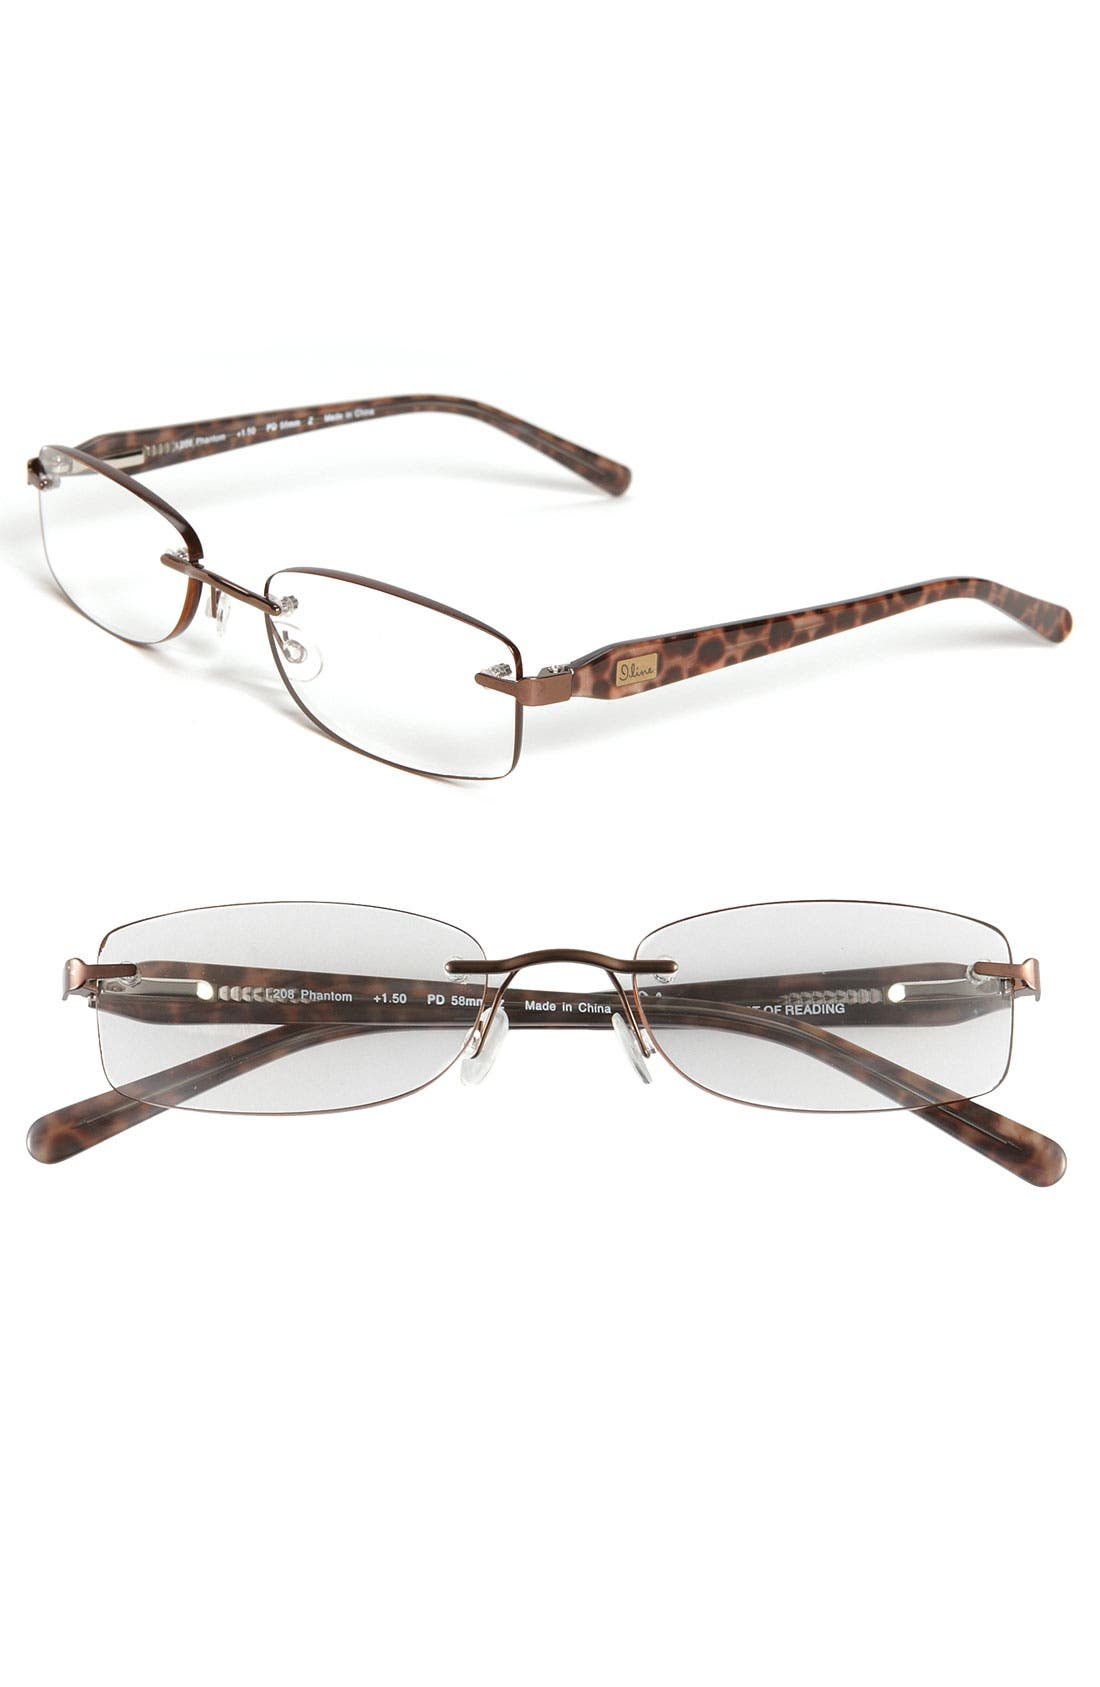 Alternate Image 1 Selected - I Line Eyewear 'Phantom' EdgeGlow® Reading Glasses (2 for $88)